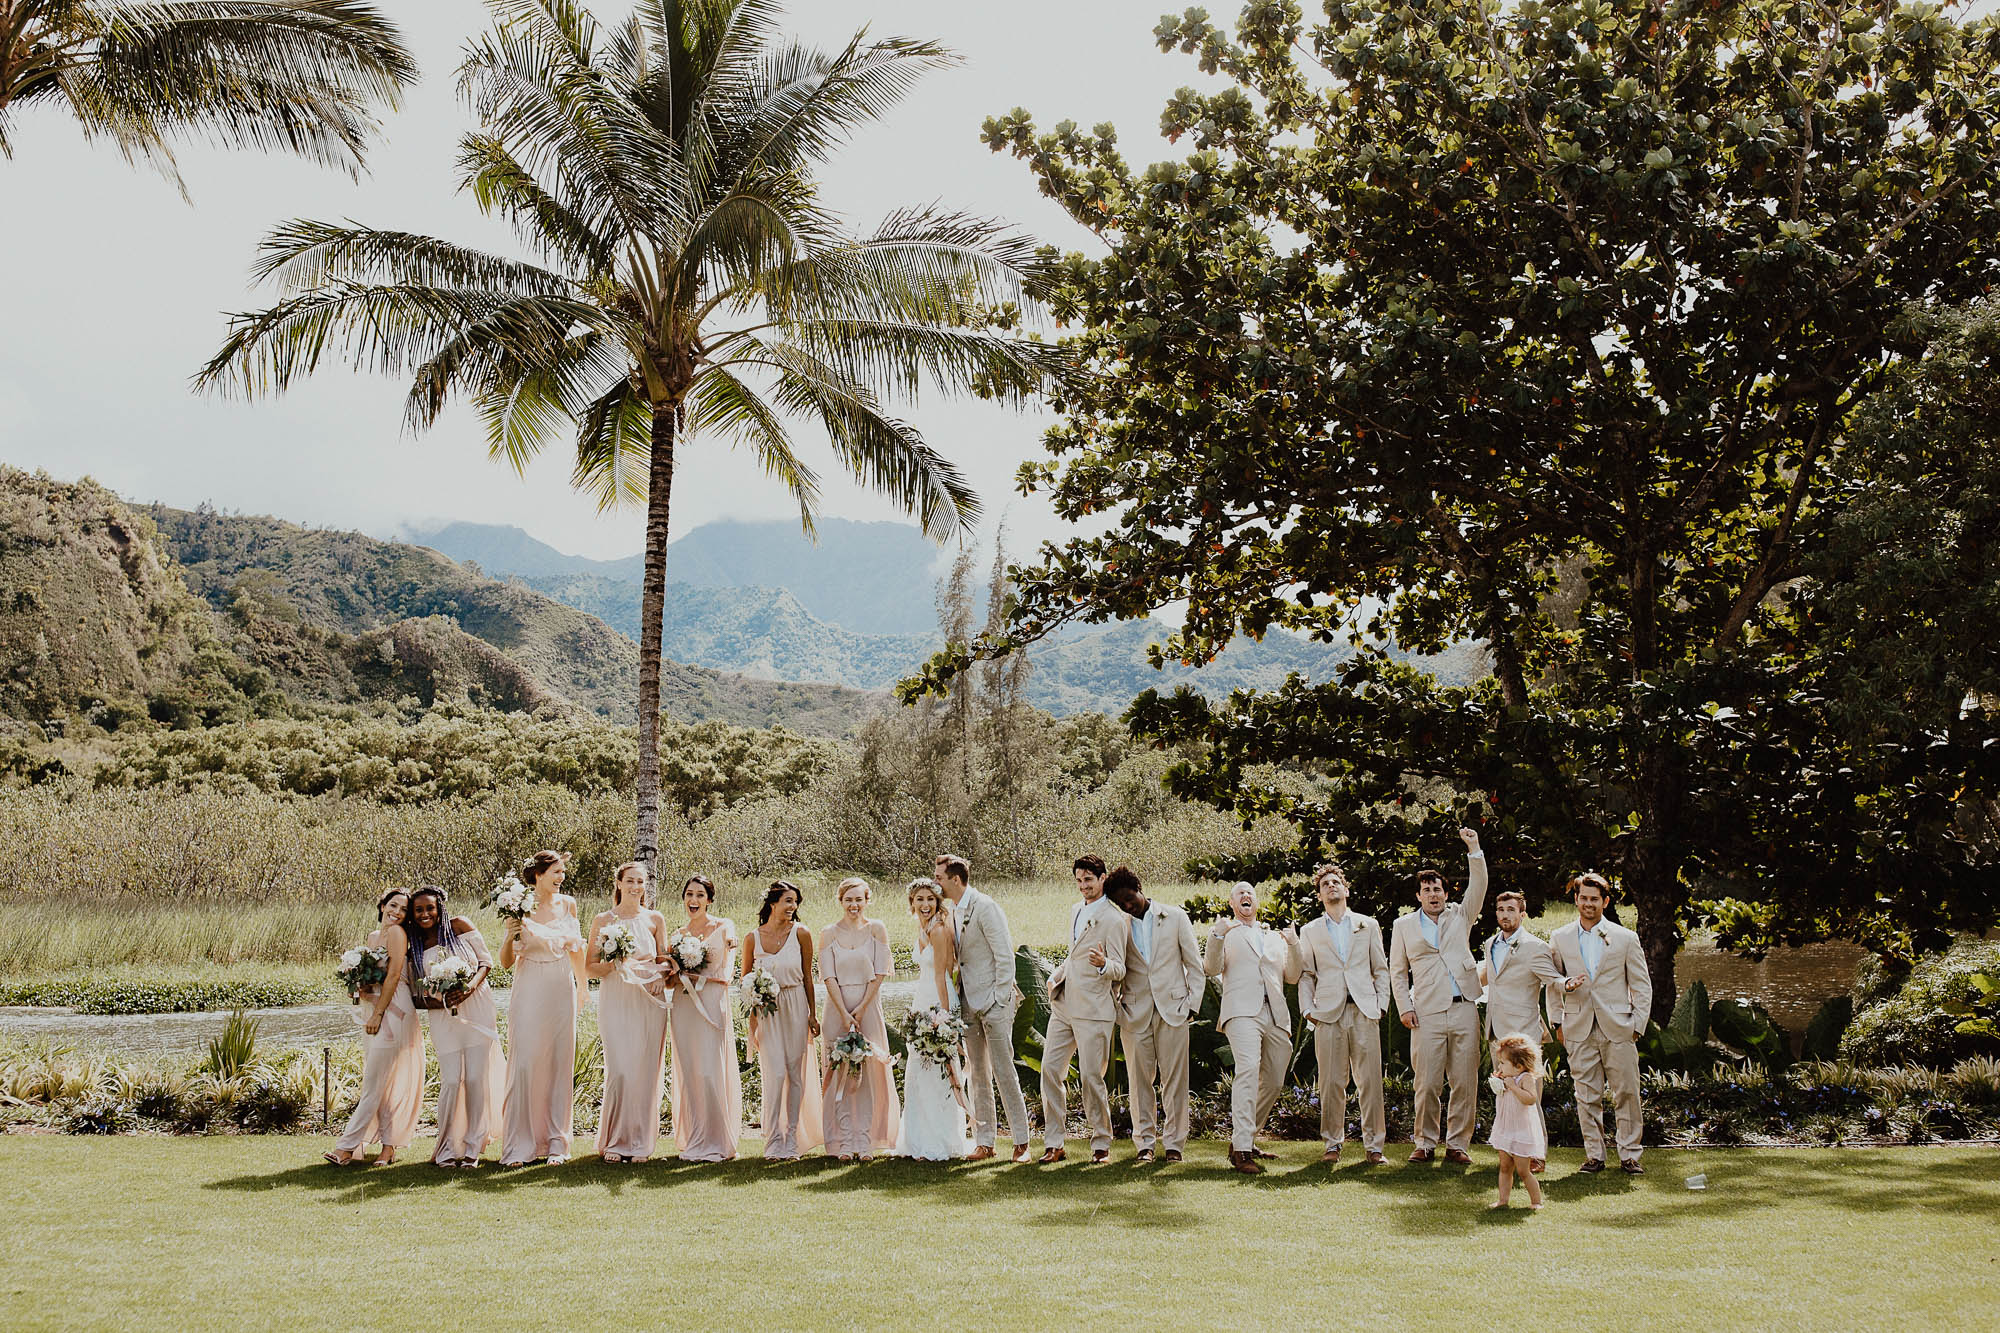 Our wedding party blush dresses and grey suits in north shore kauai hawaii wedding